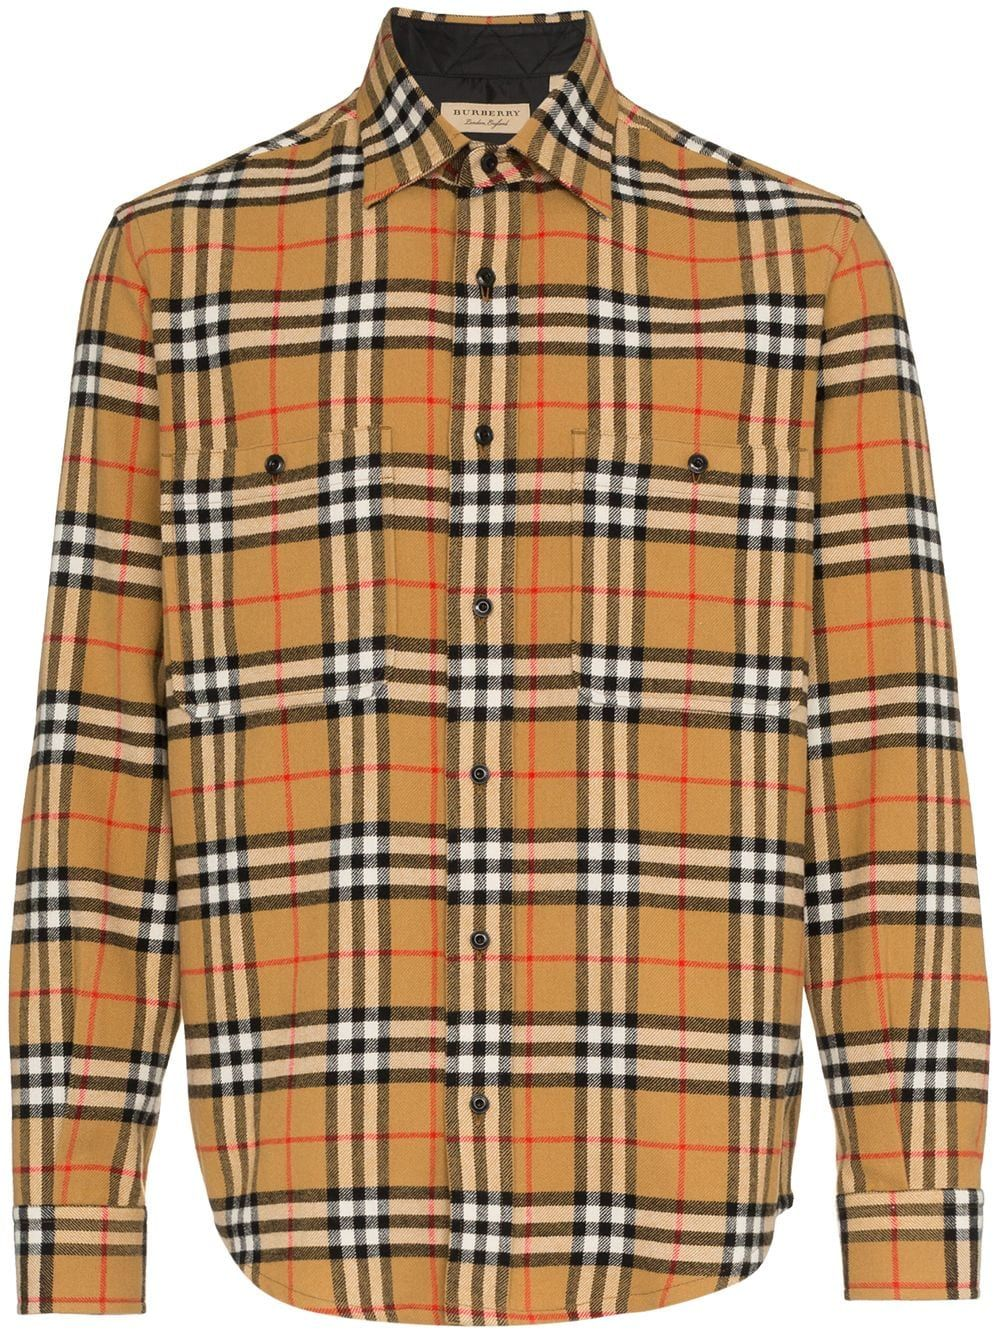 6f6aa8cb Burberry Flannel Vintage Checked Shirt | Shirts in 2019 | Flannel ...